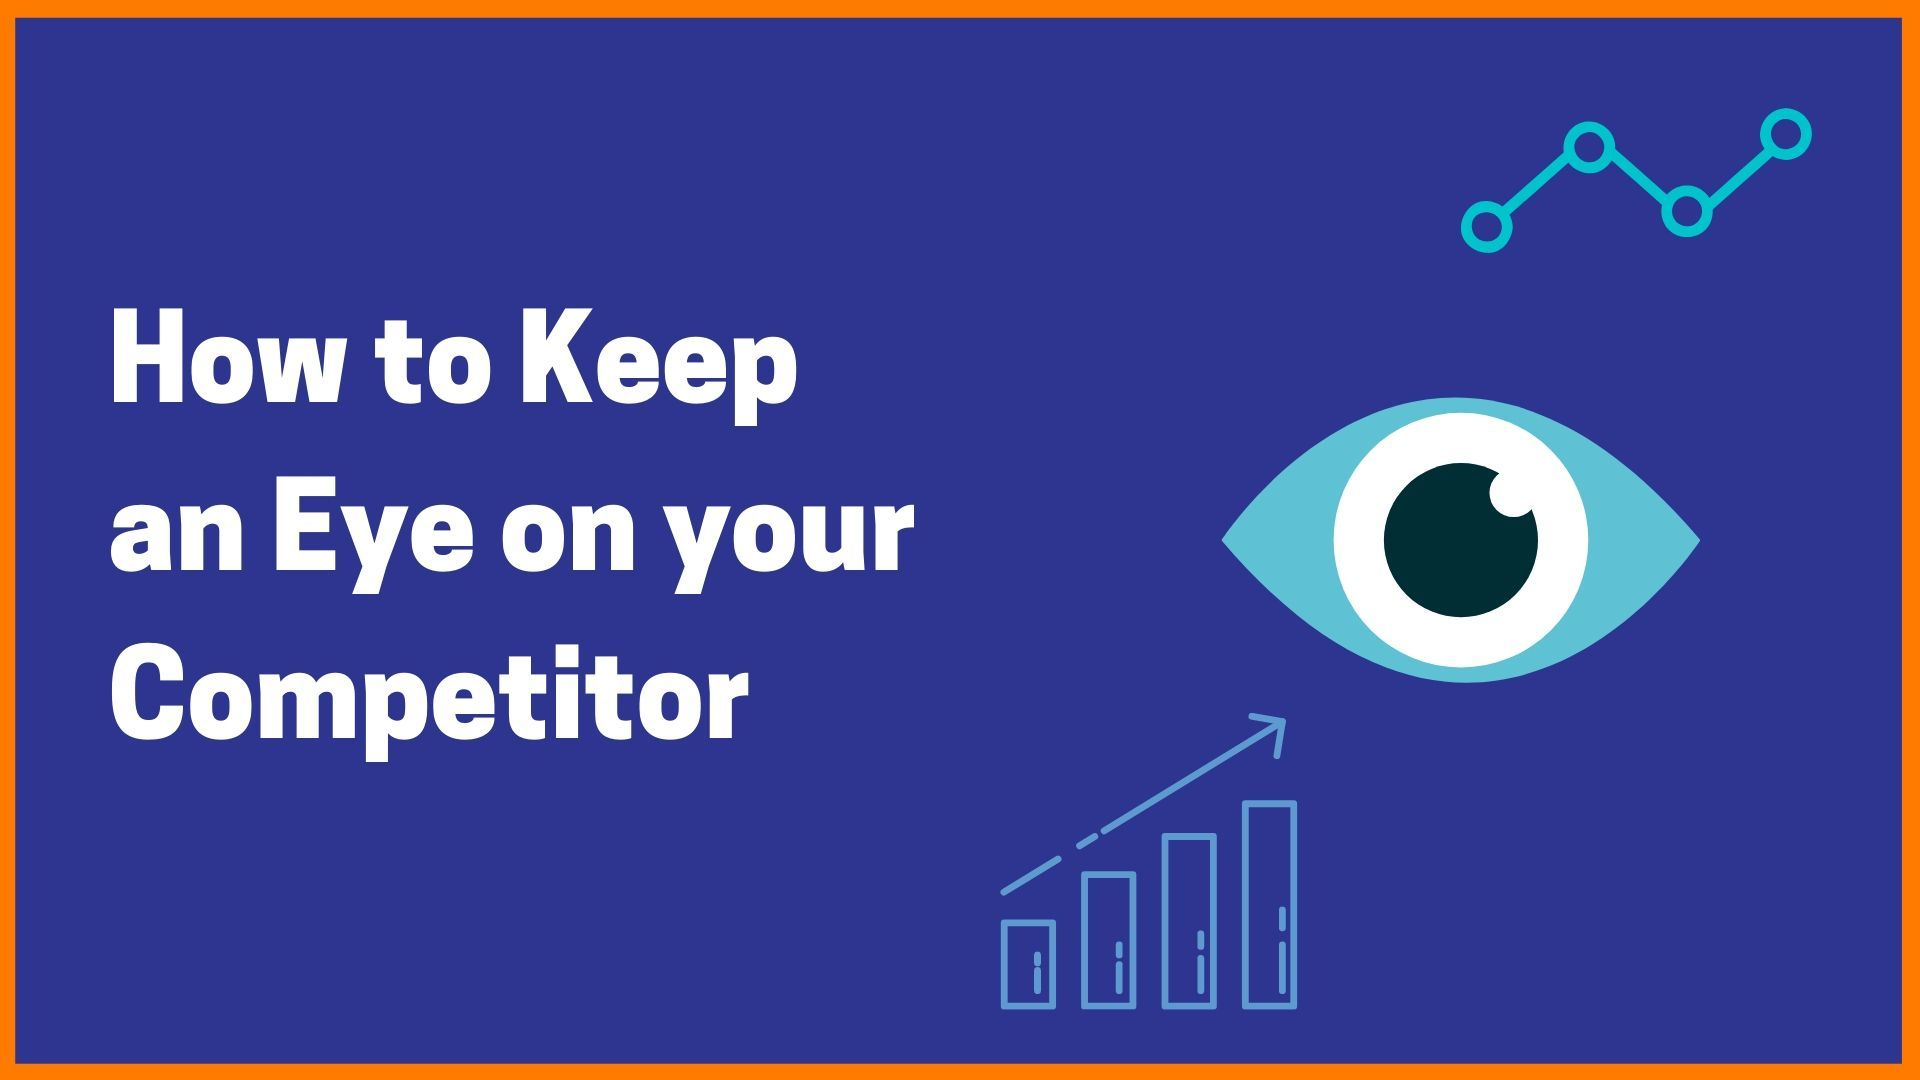 How to Keep an Eye on your Competitor